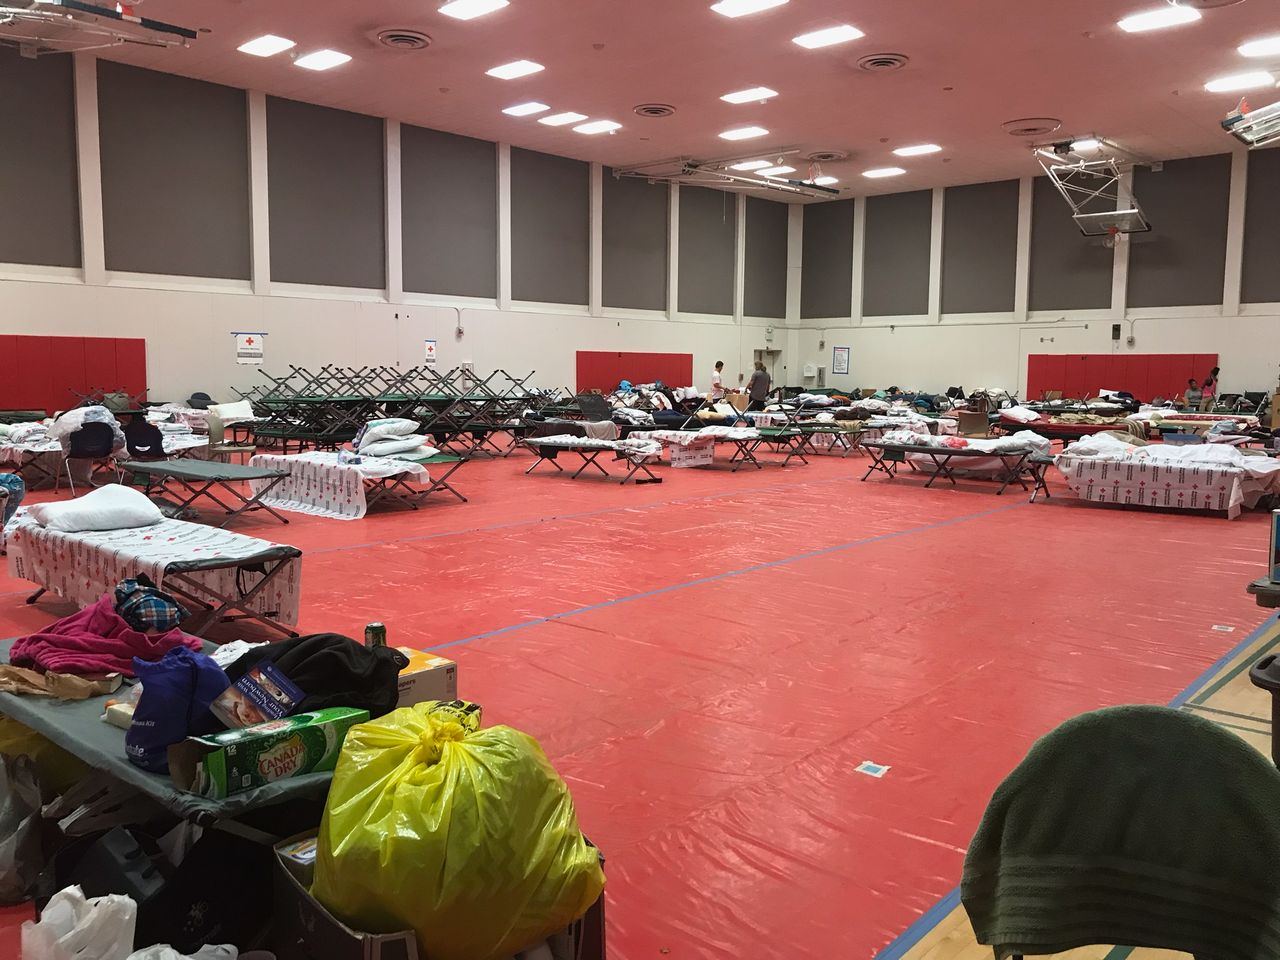 A Red Cross shelter at Pierce College